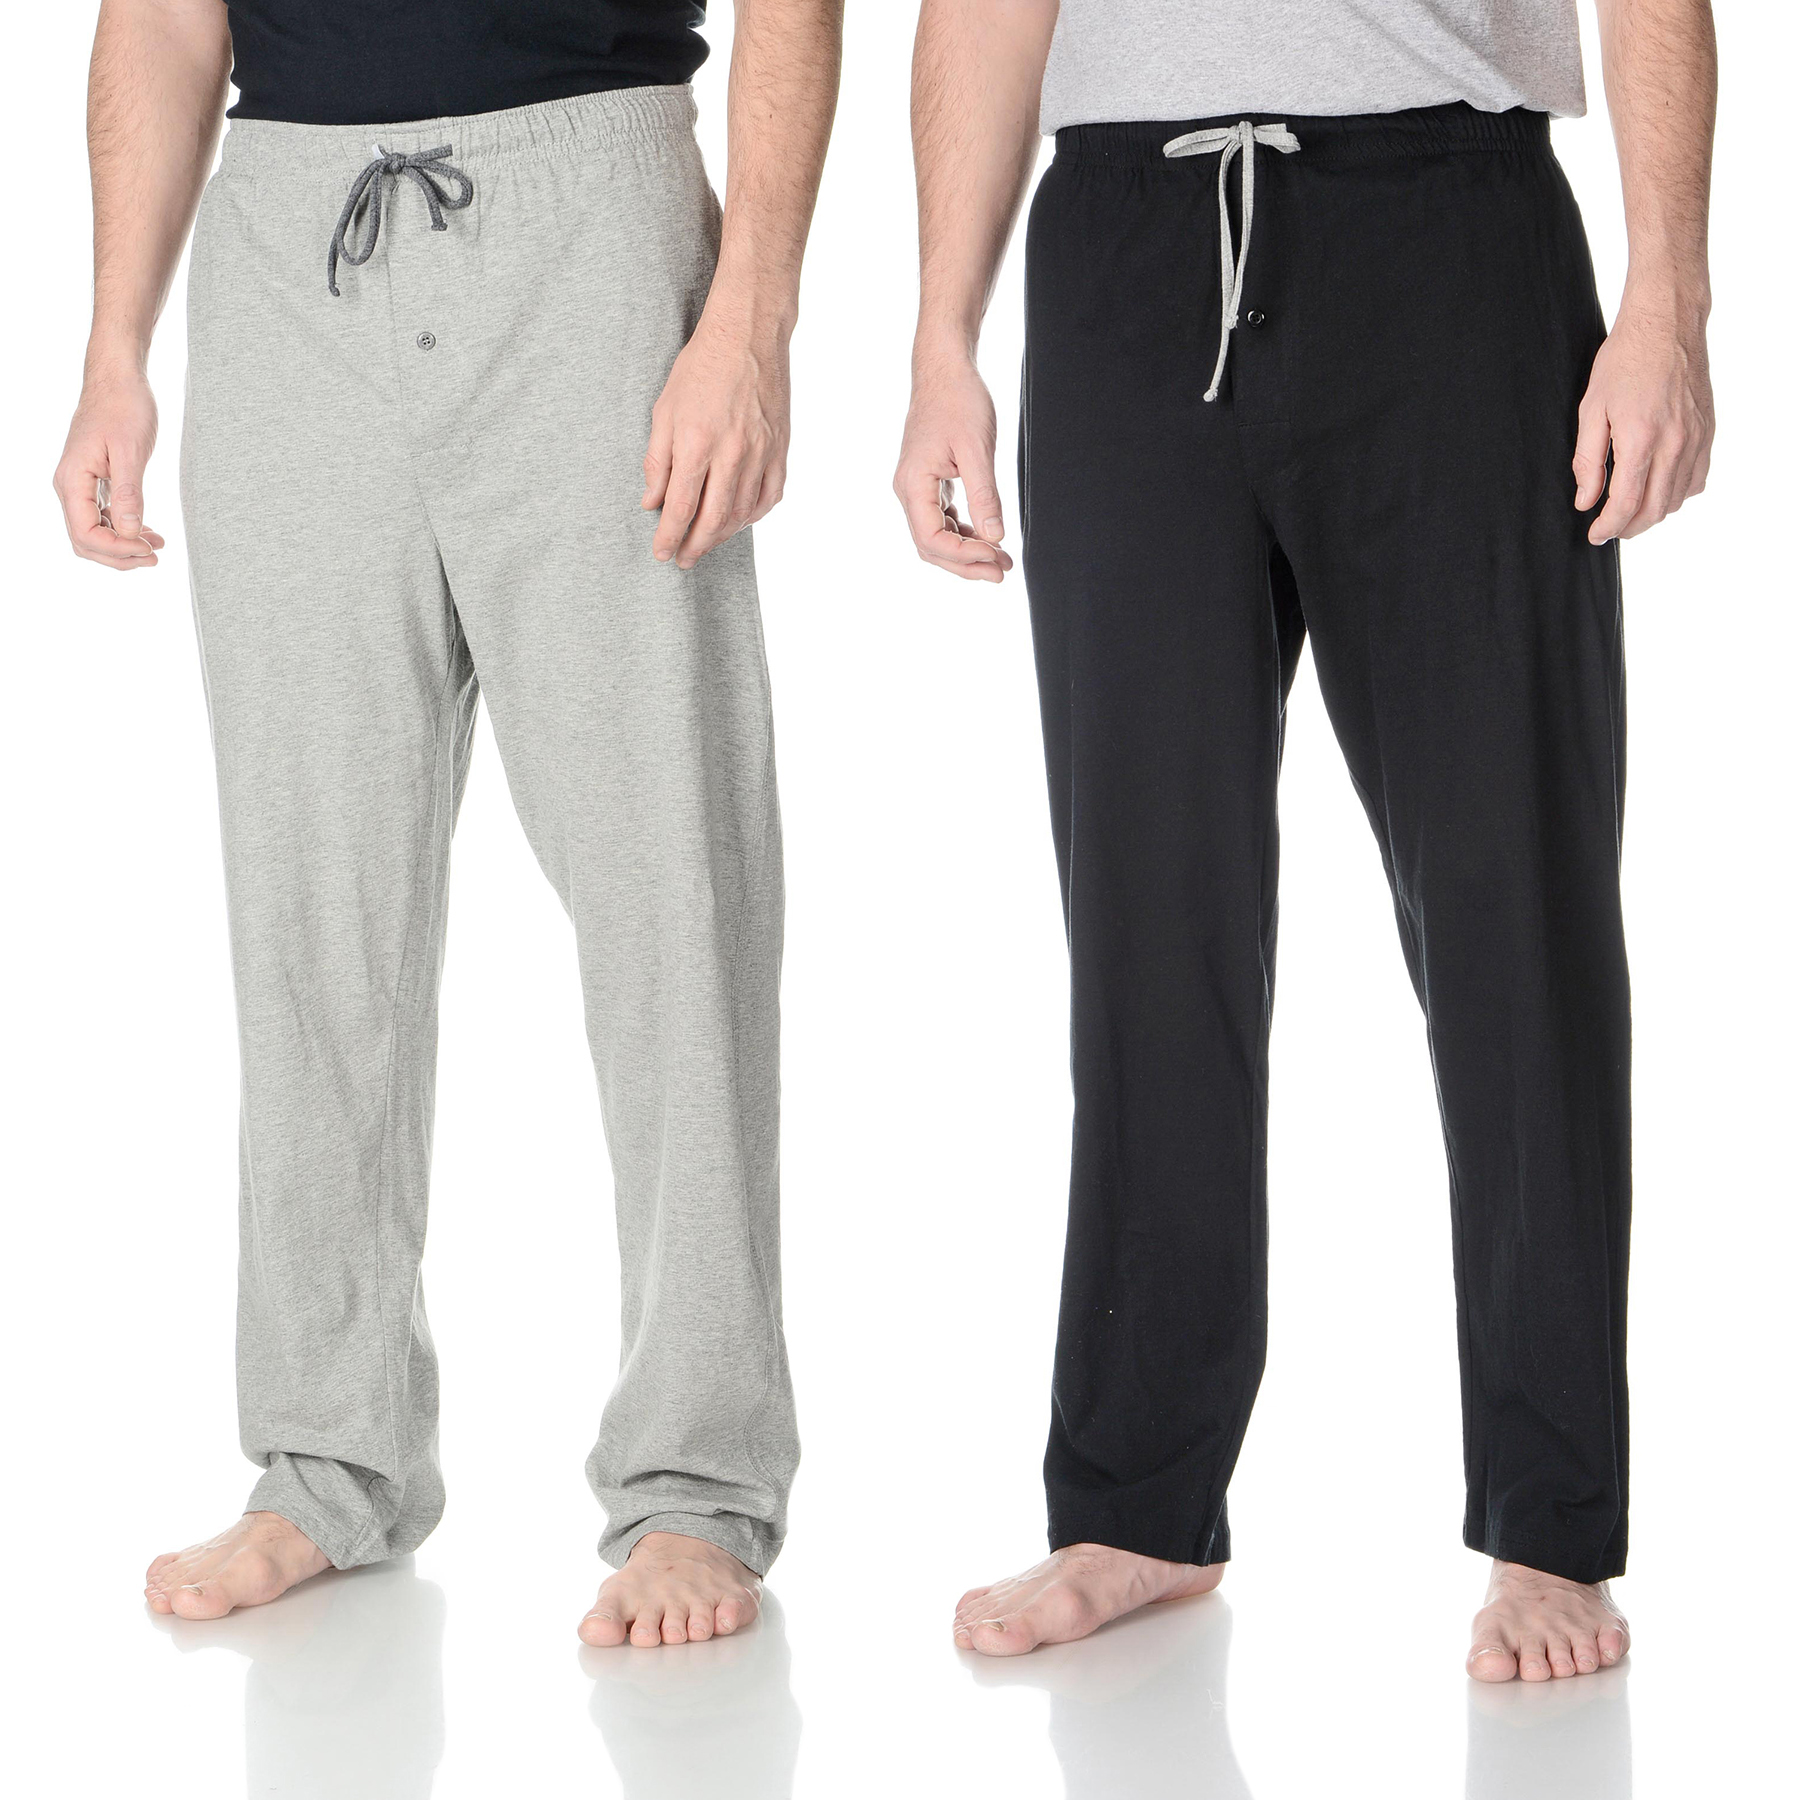 Hanes Men's 2PK Solid Black and Heather Grey Knit Jersey Pants - Online Exclusive PartNumber: 3ZZVA78170212P MfgPartNumber: 4047